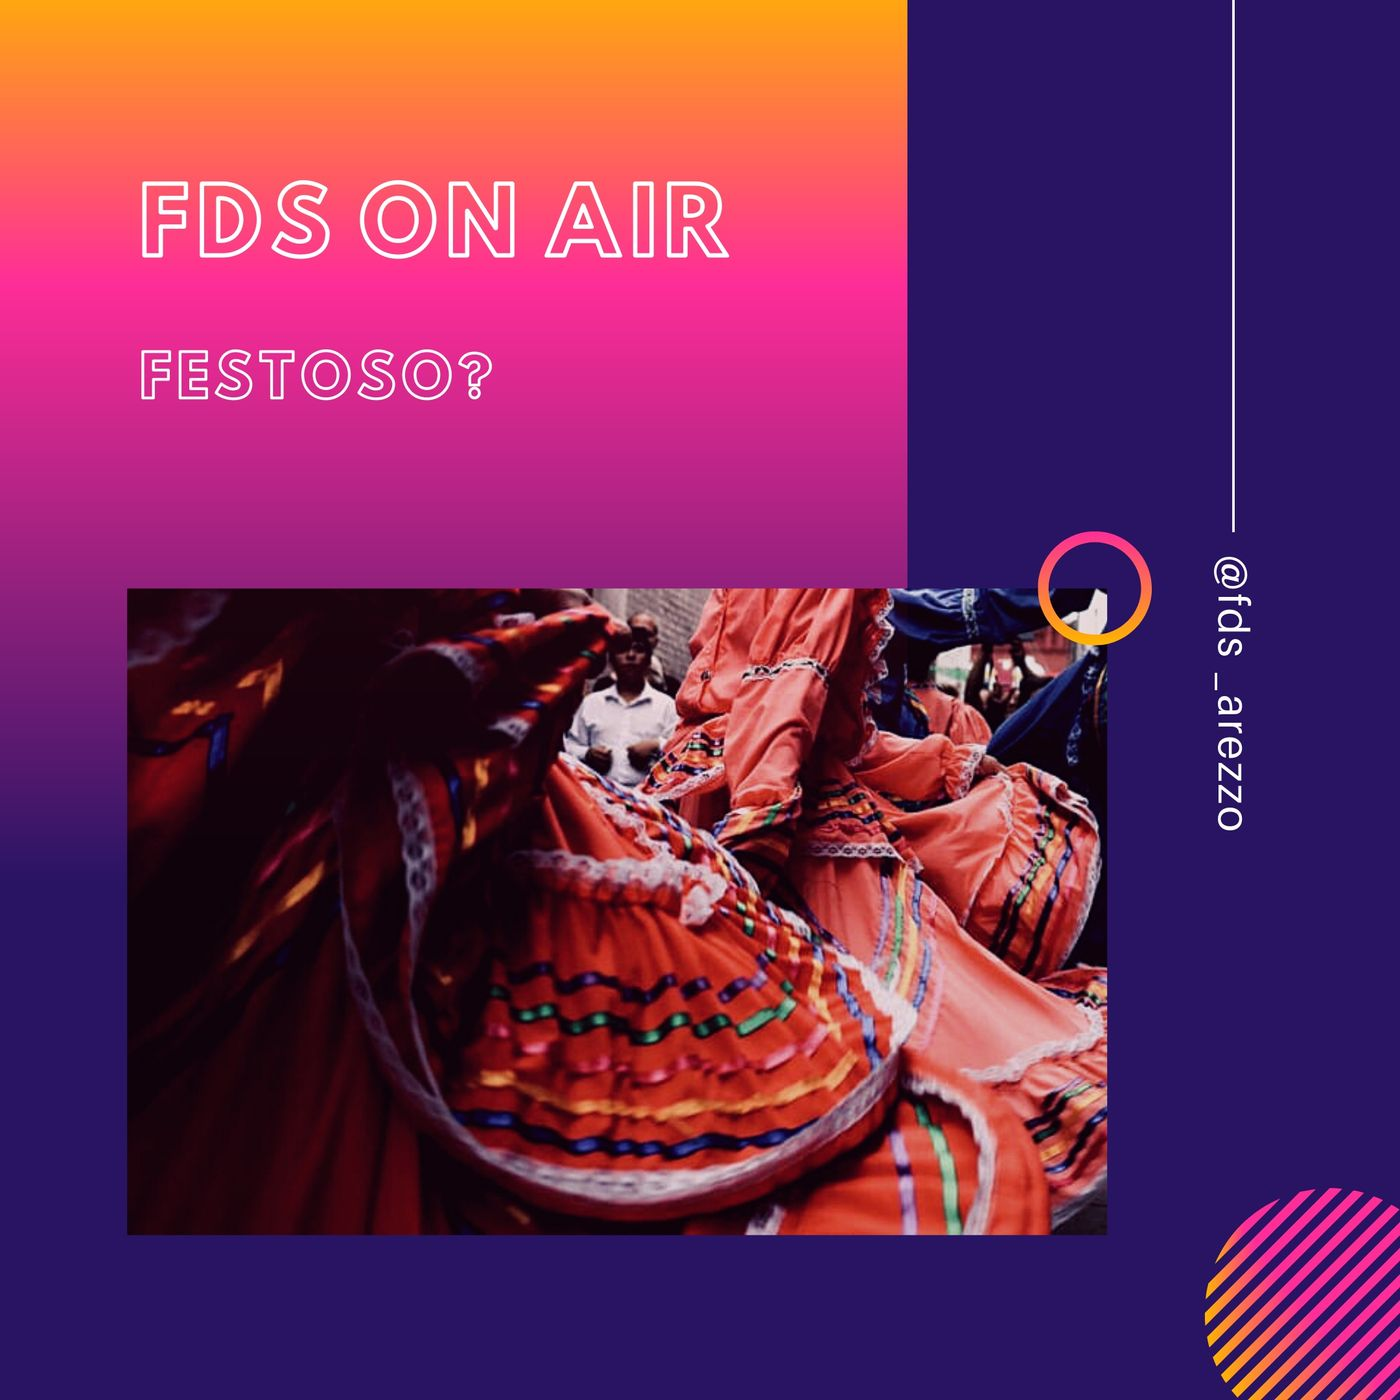 FDS ON AIR - Festoso?